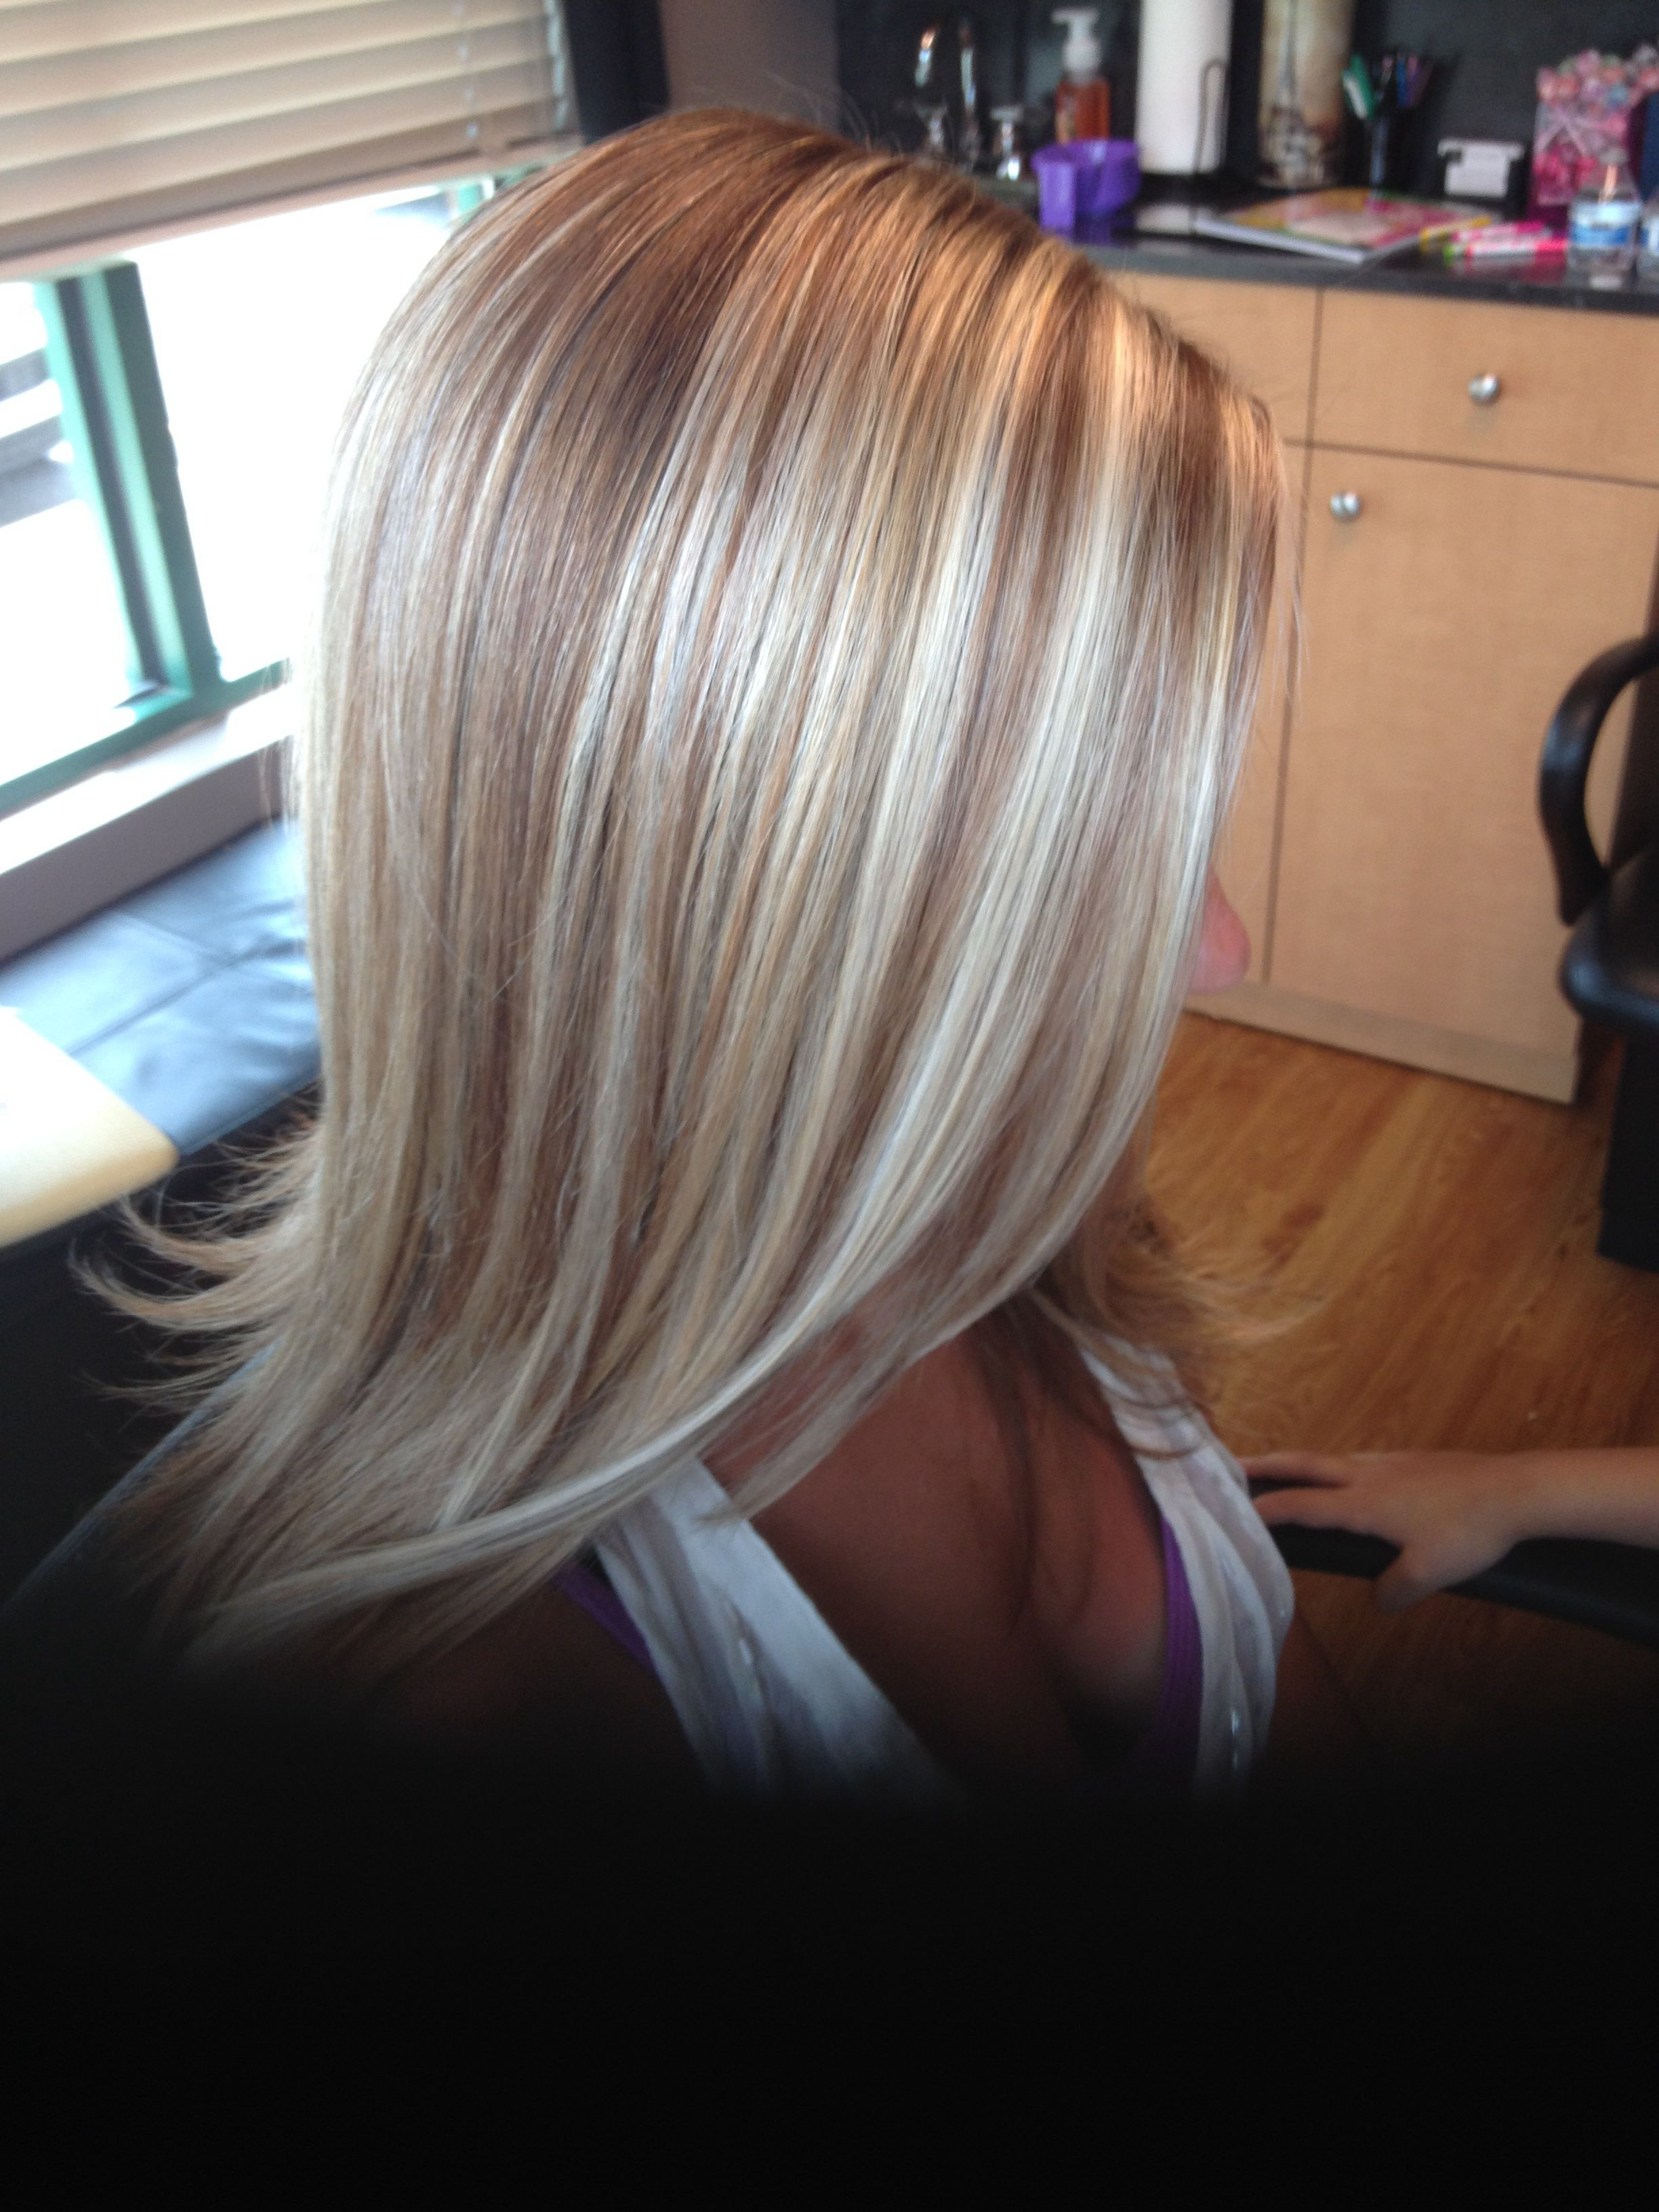 Blonde Highlights And Low Lights Hair By Melissa Lobaito